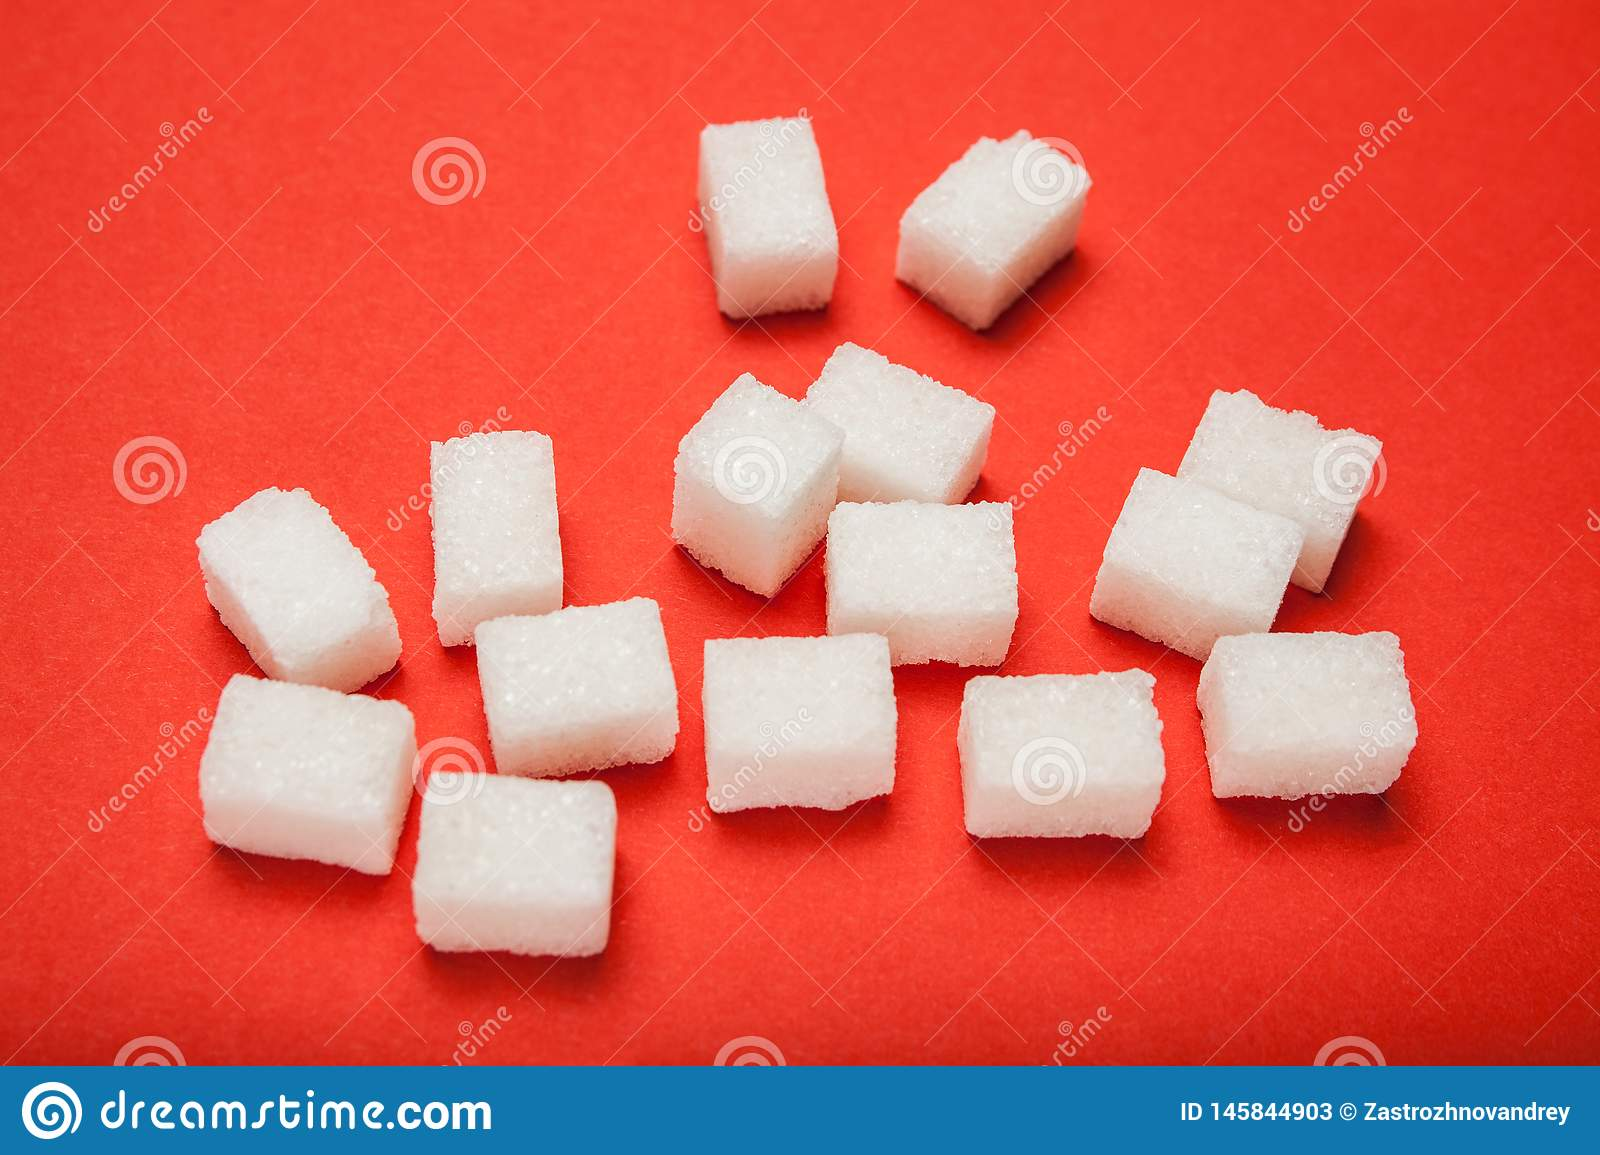 Spilled cubes of sugar on a red background